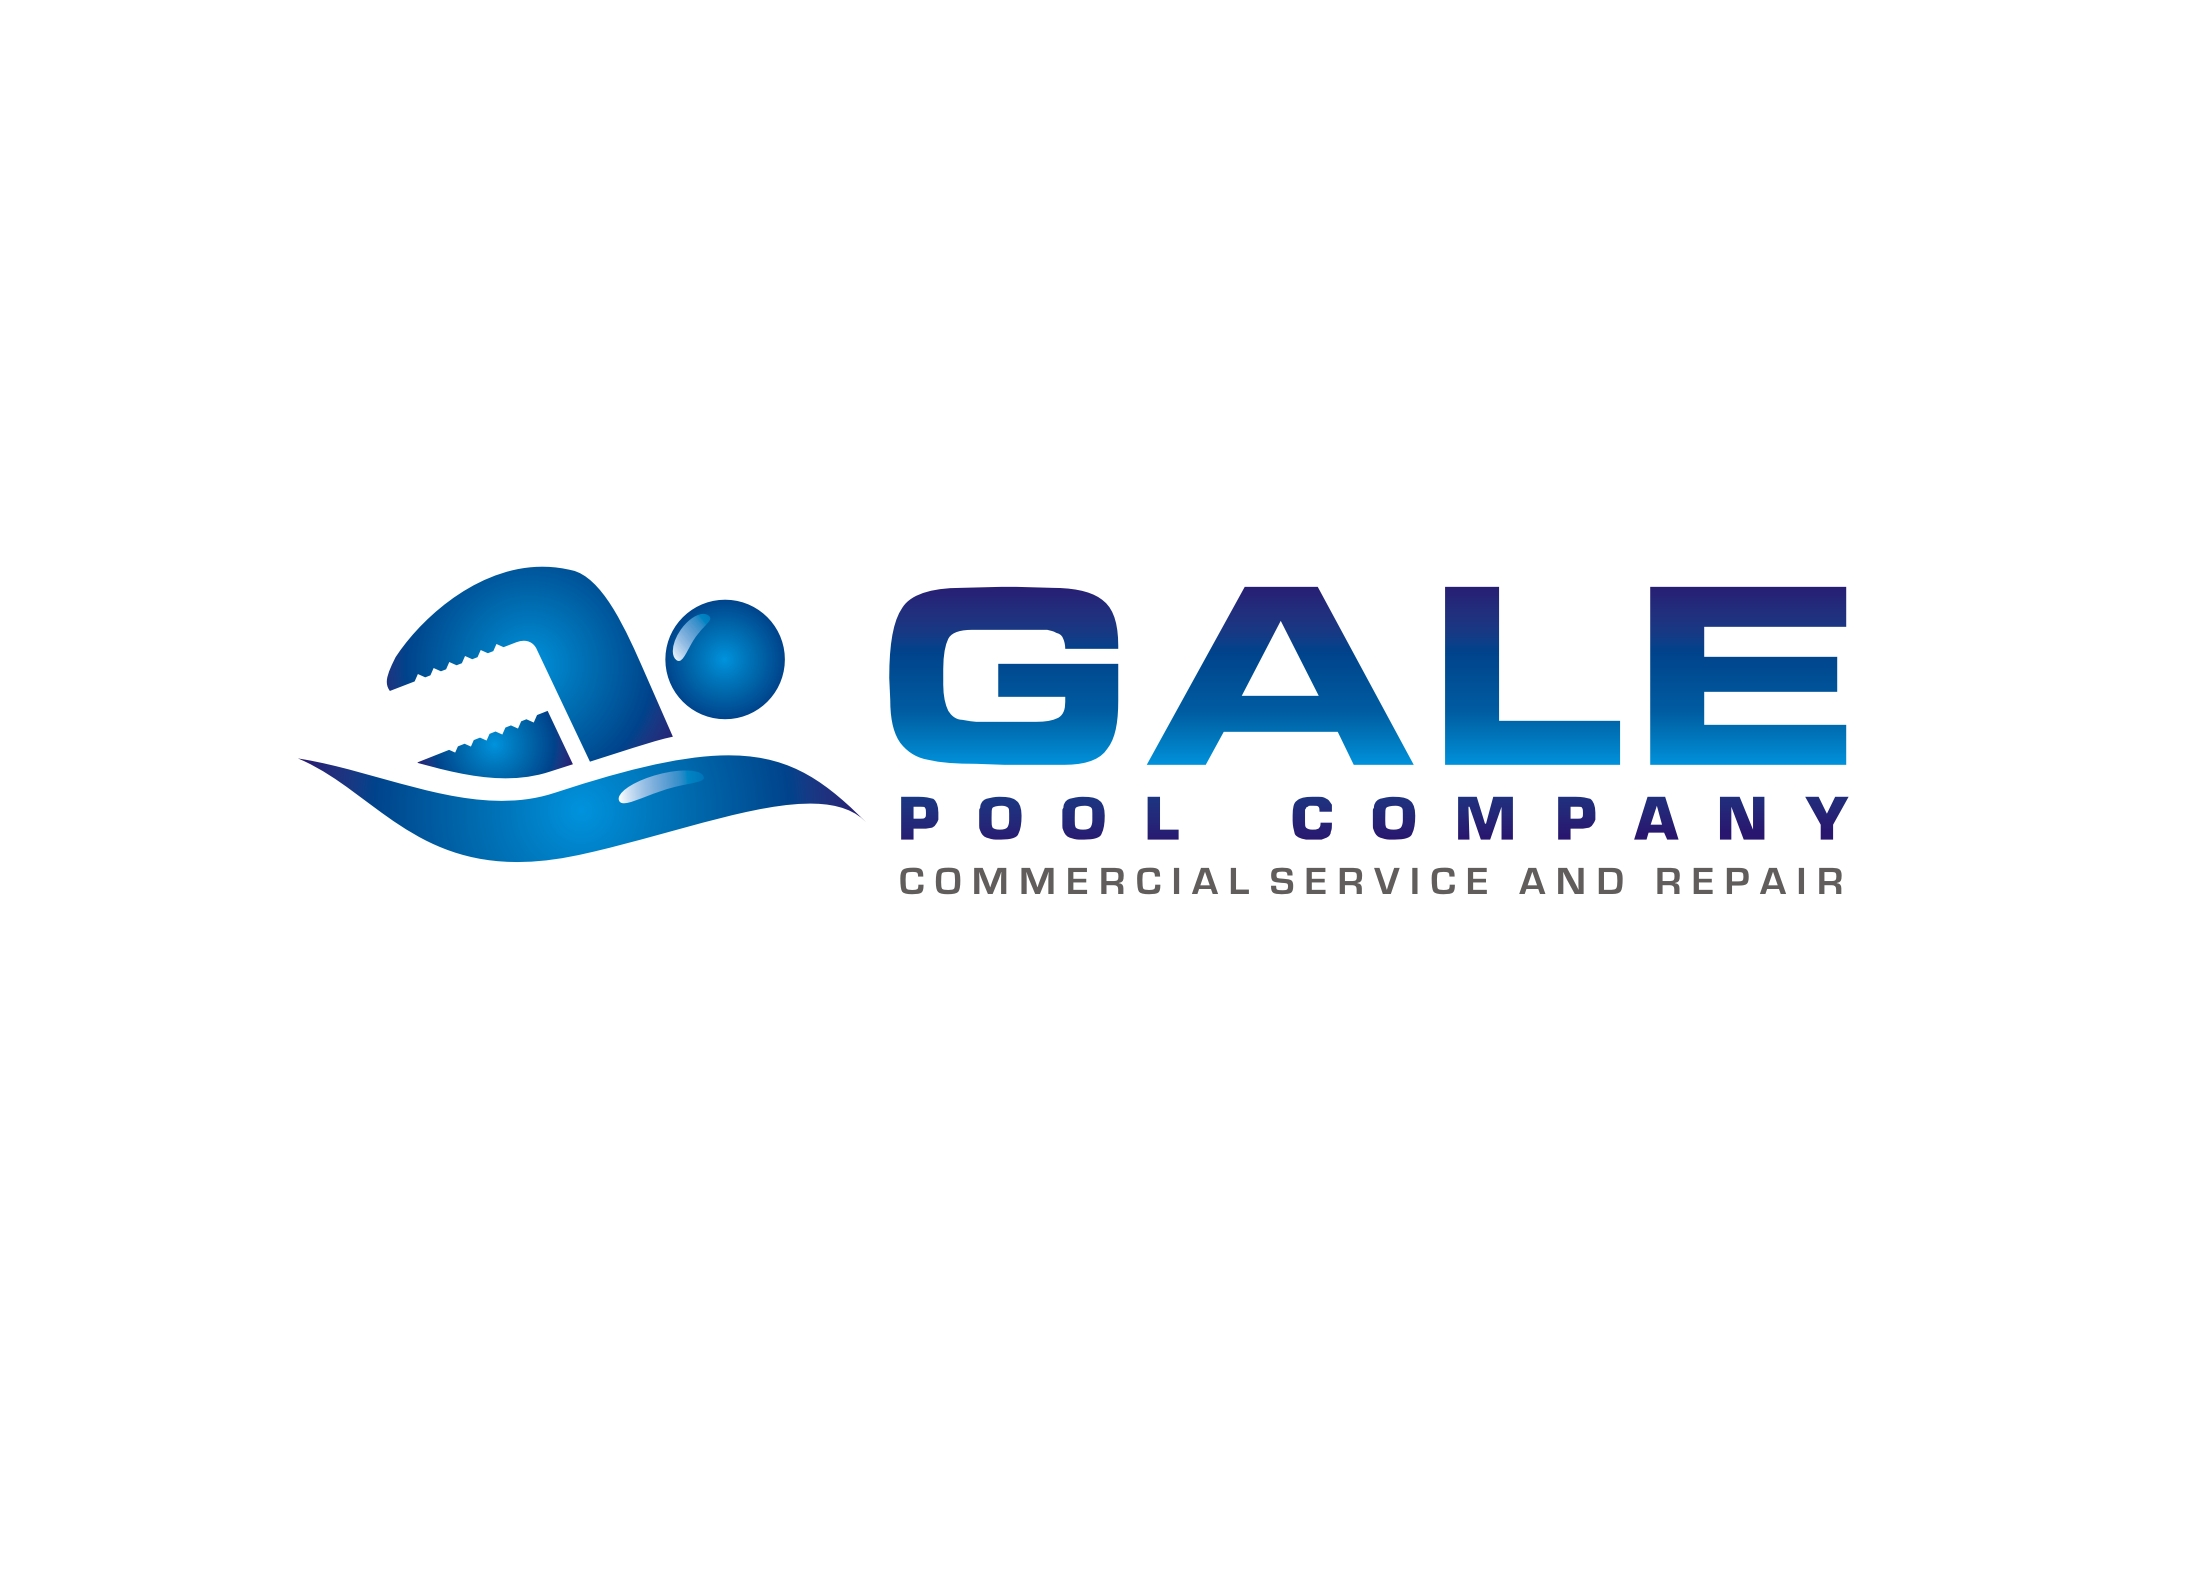 Logo Design by Zdravko Krulj - Entry No. 110 in the Logo Design Contest Imaginative Logo Design for Gale Pool Company.